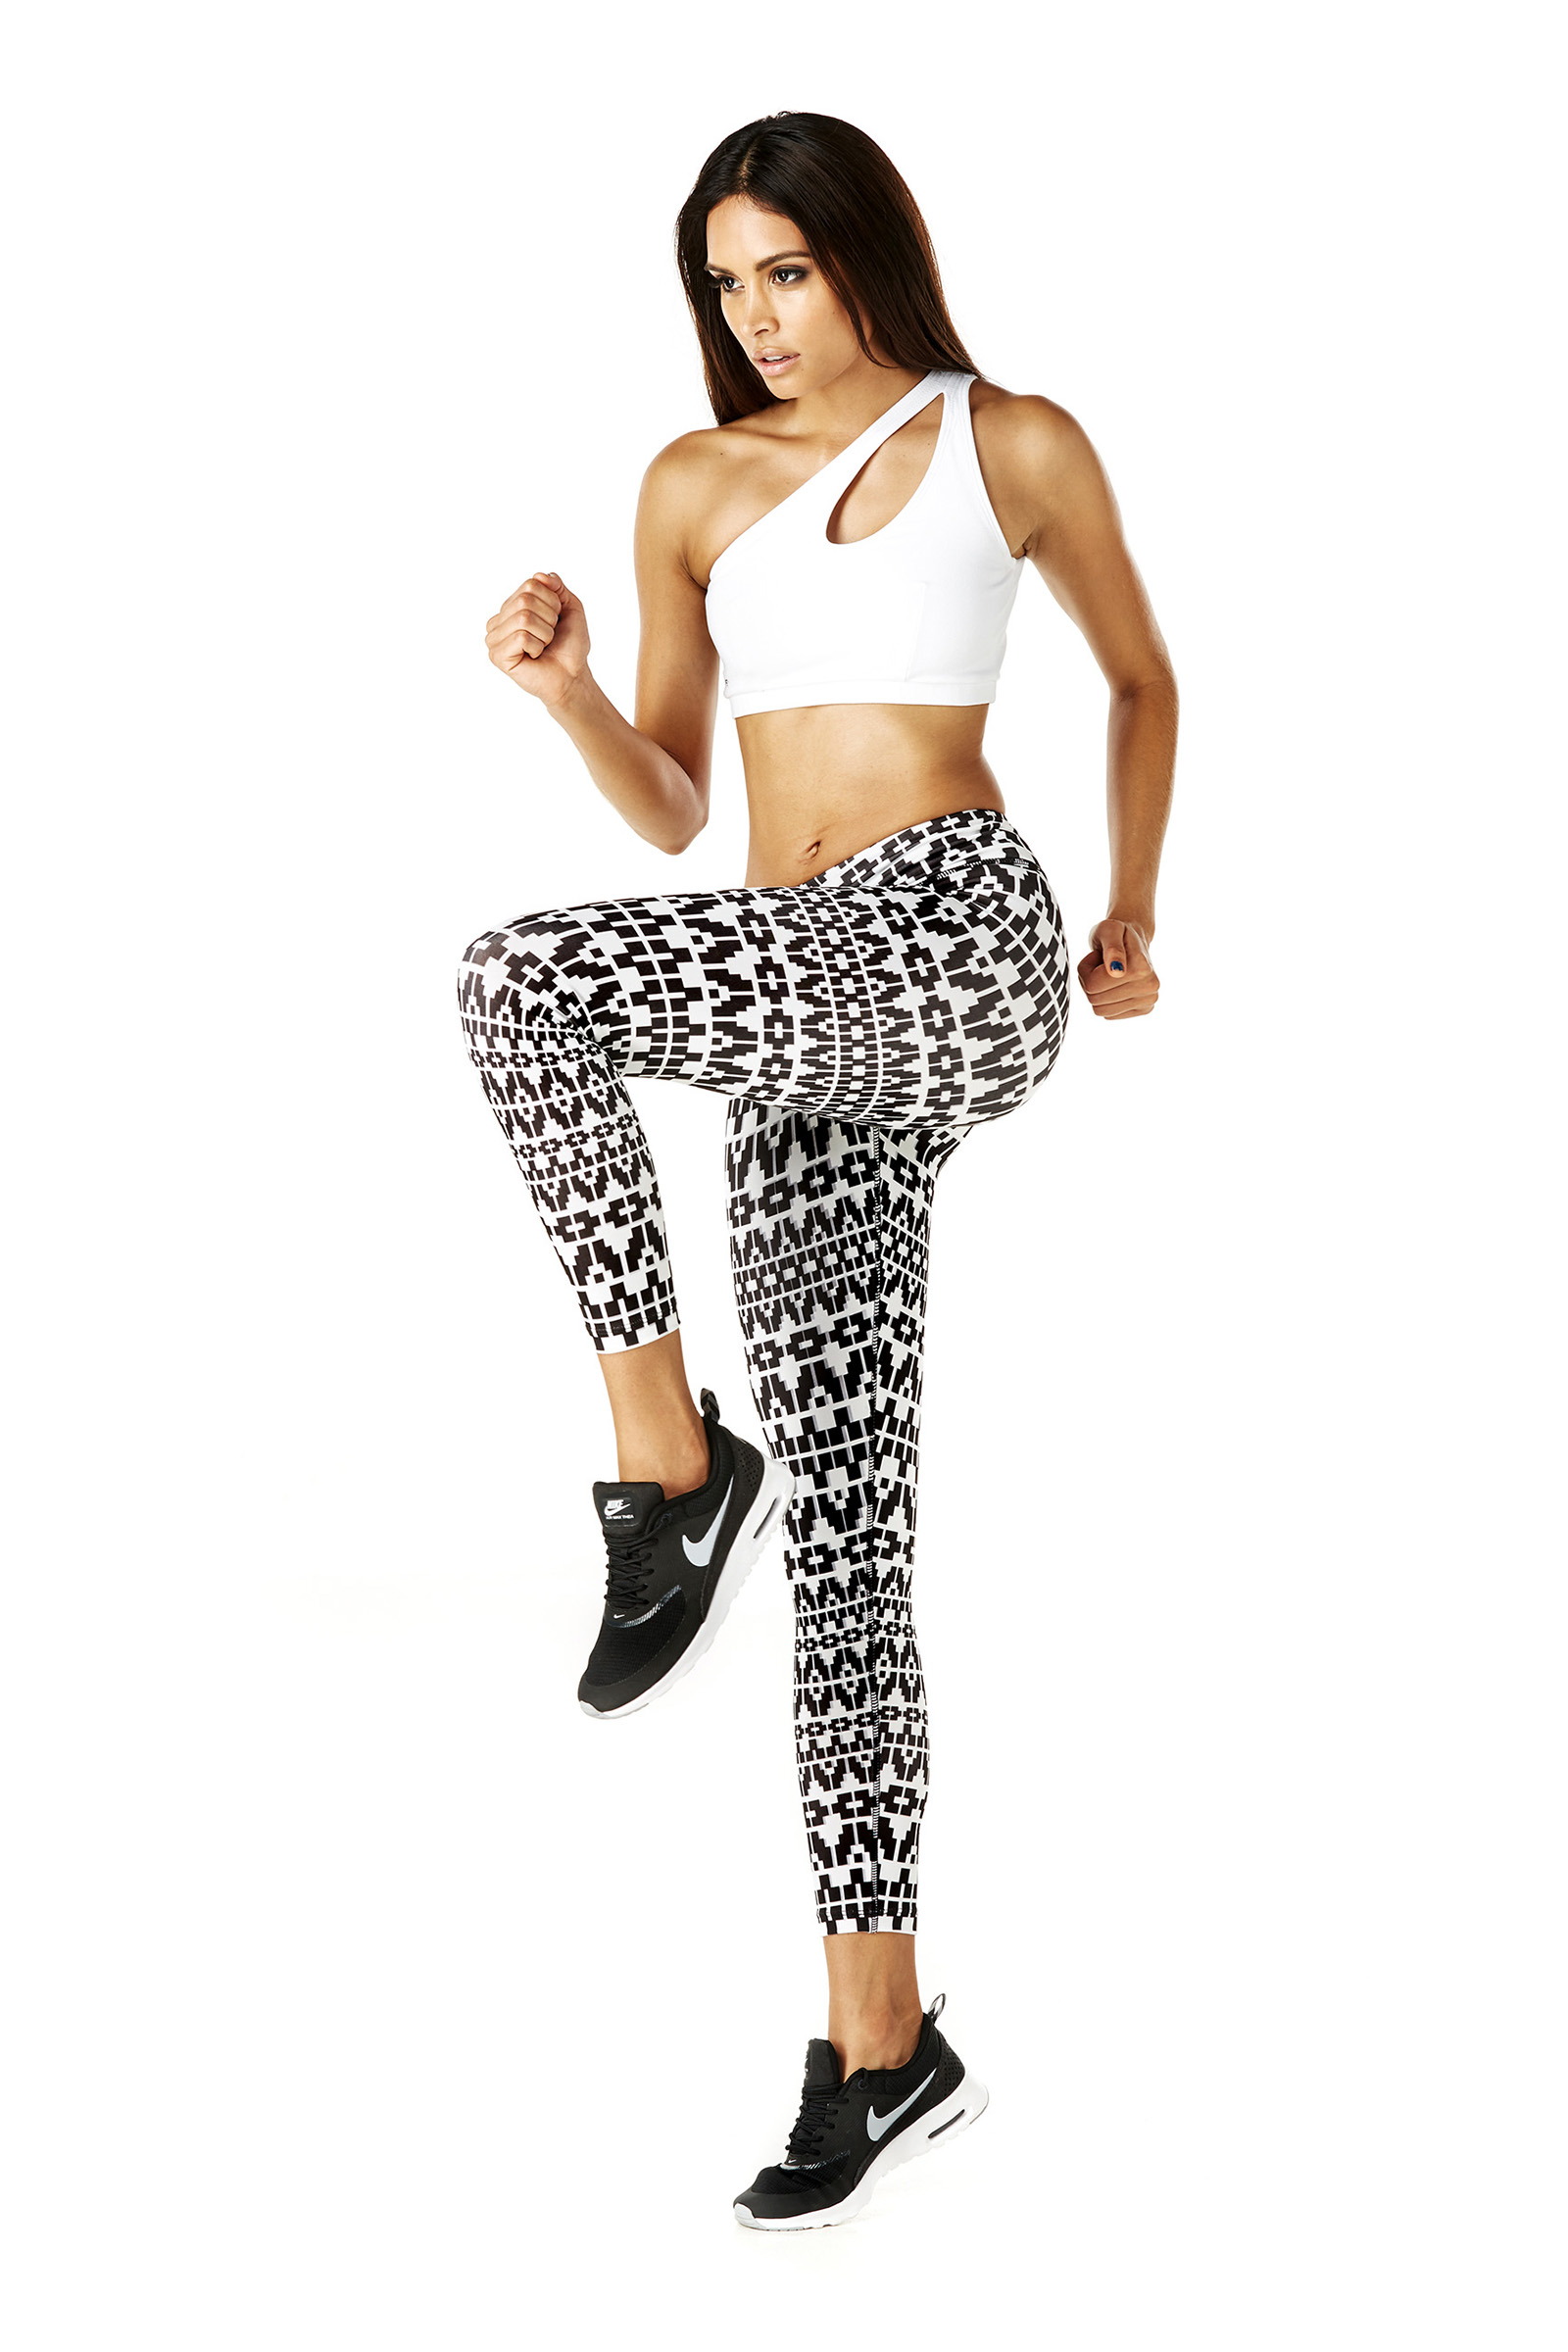 Fashion studio photography of fitness model in white top and black and white pants workout pose